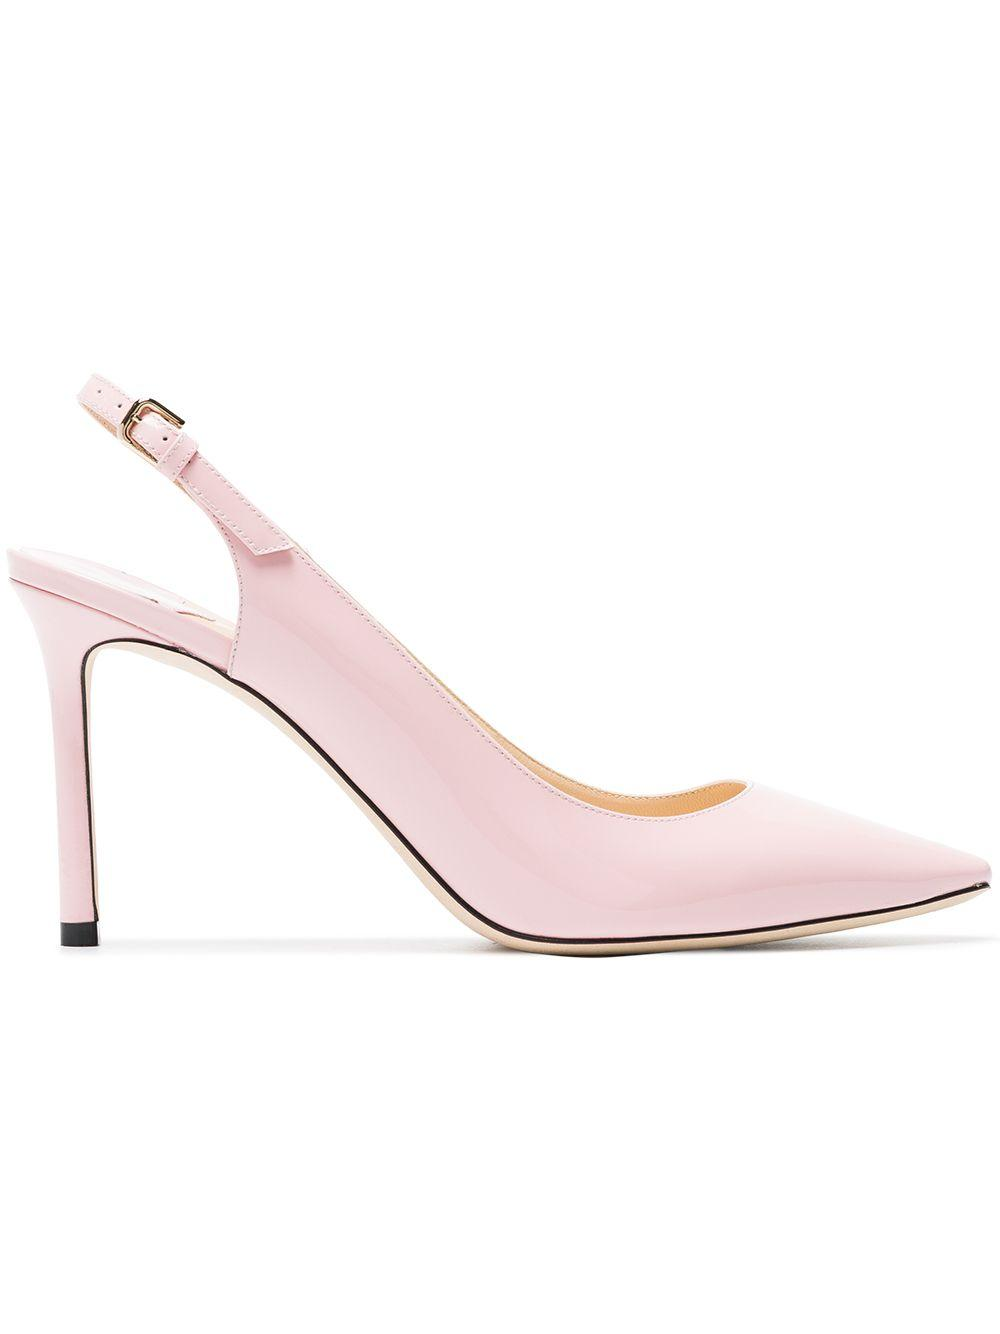 1ca108bdc7a7 Jimmy Choo Pink Erin 85 Patent Leather Pumps